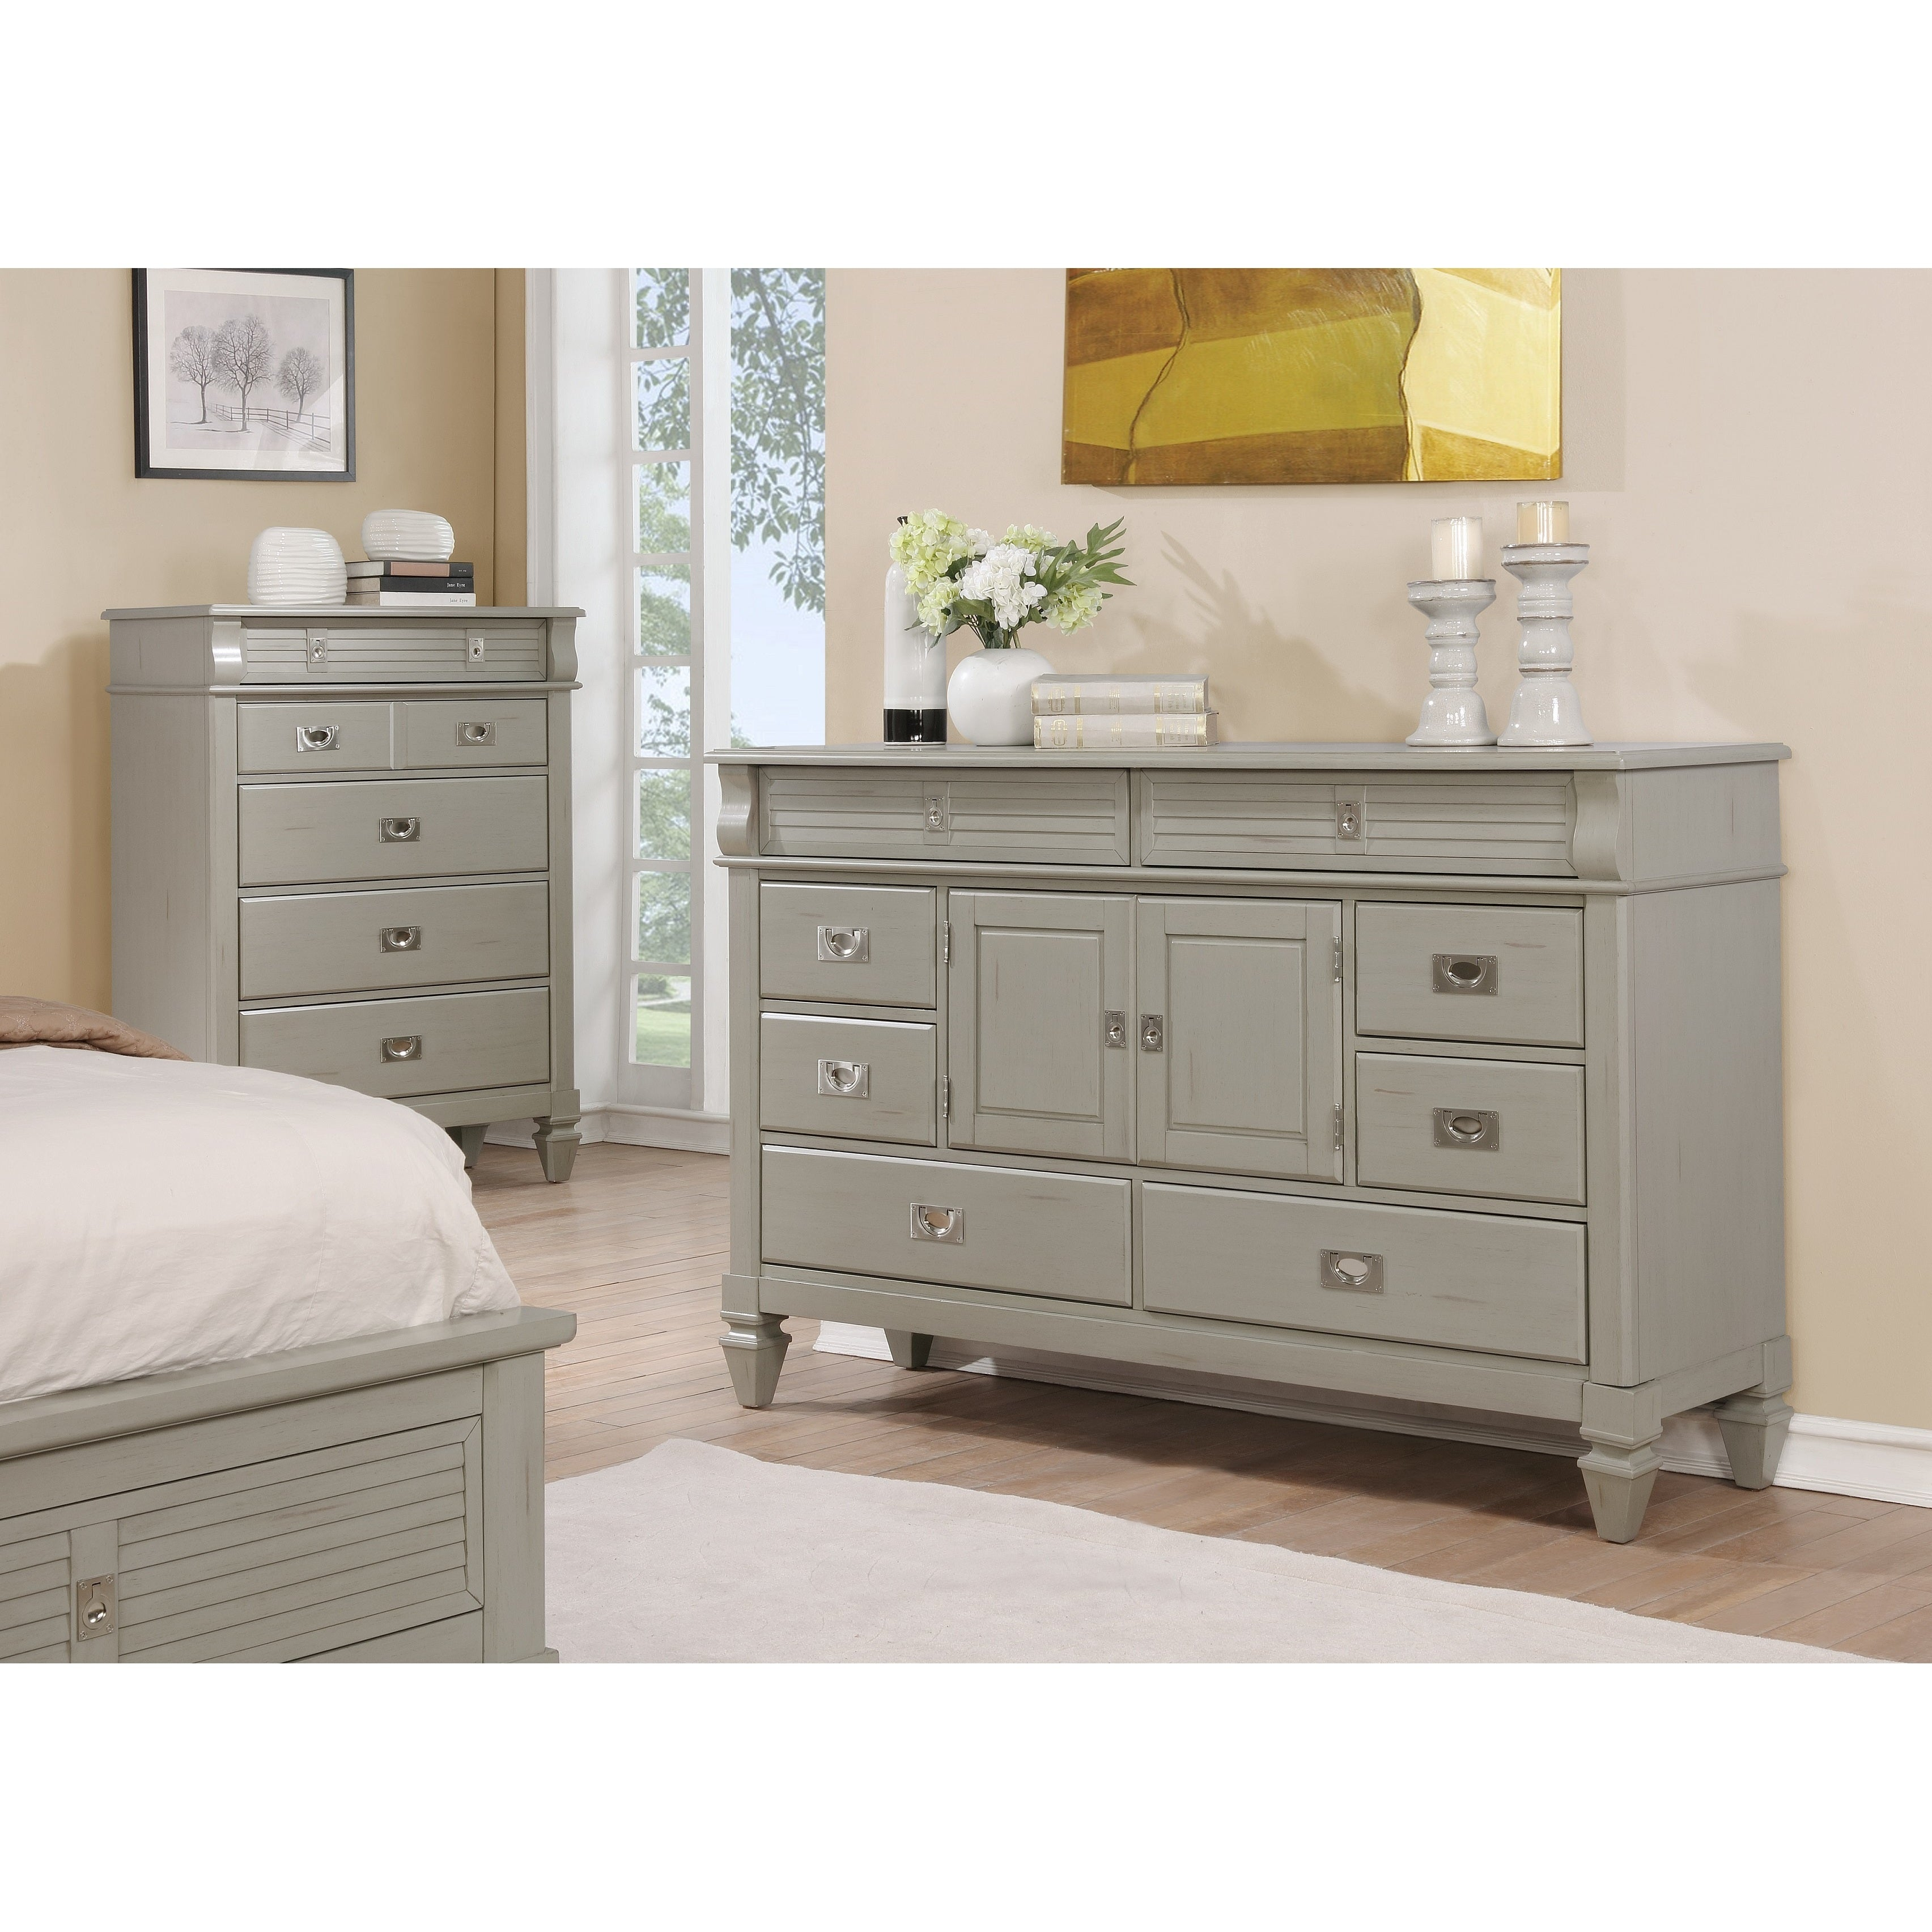 size bed queen nightstands chest bedroom waterfall shop deco art set vintage